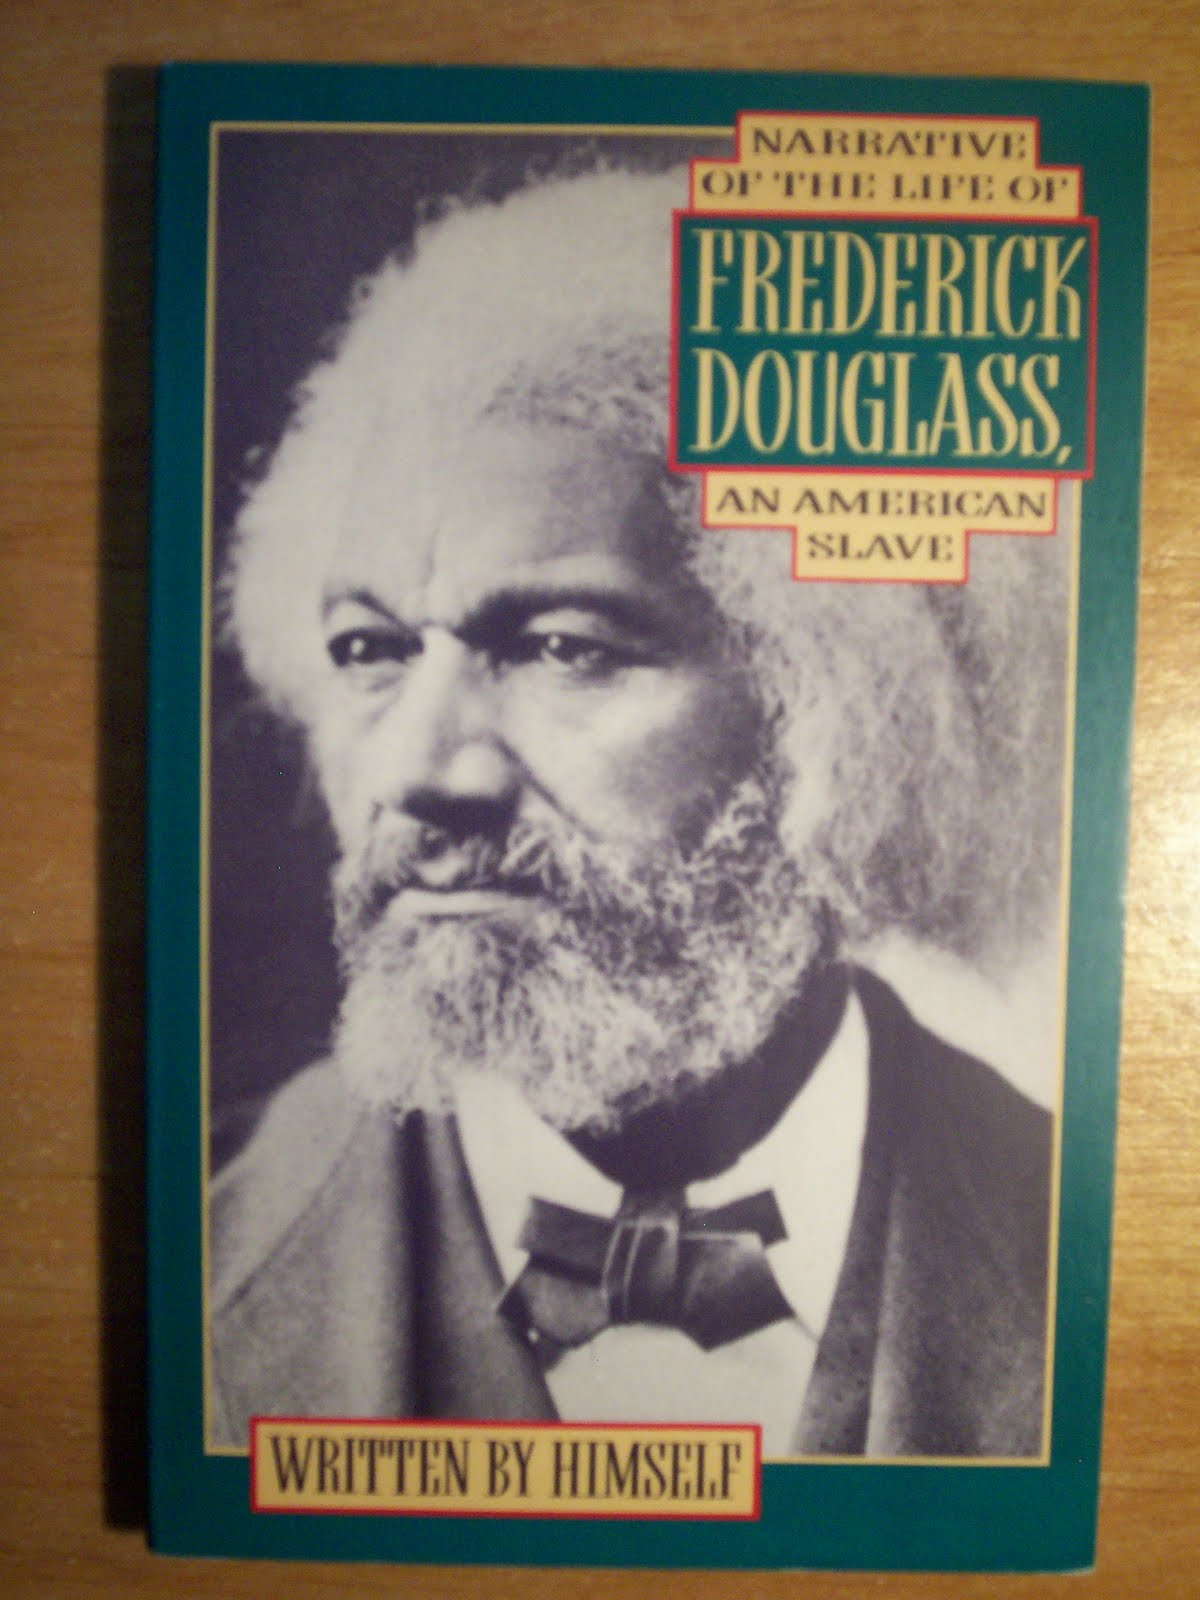 the life of frederick douglass Bibliography primary sources works by douglass 1845, narrative of the life of frederick douglass, an american slave, written by himself two modern editions are.